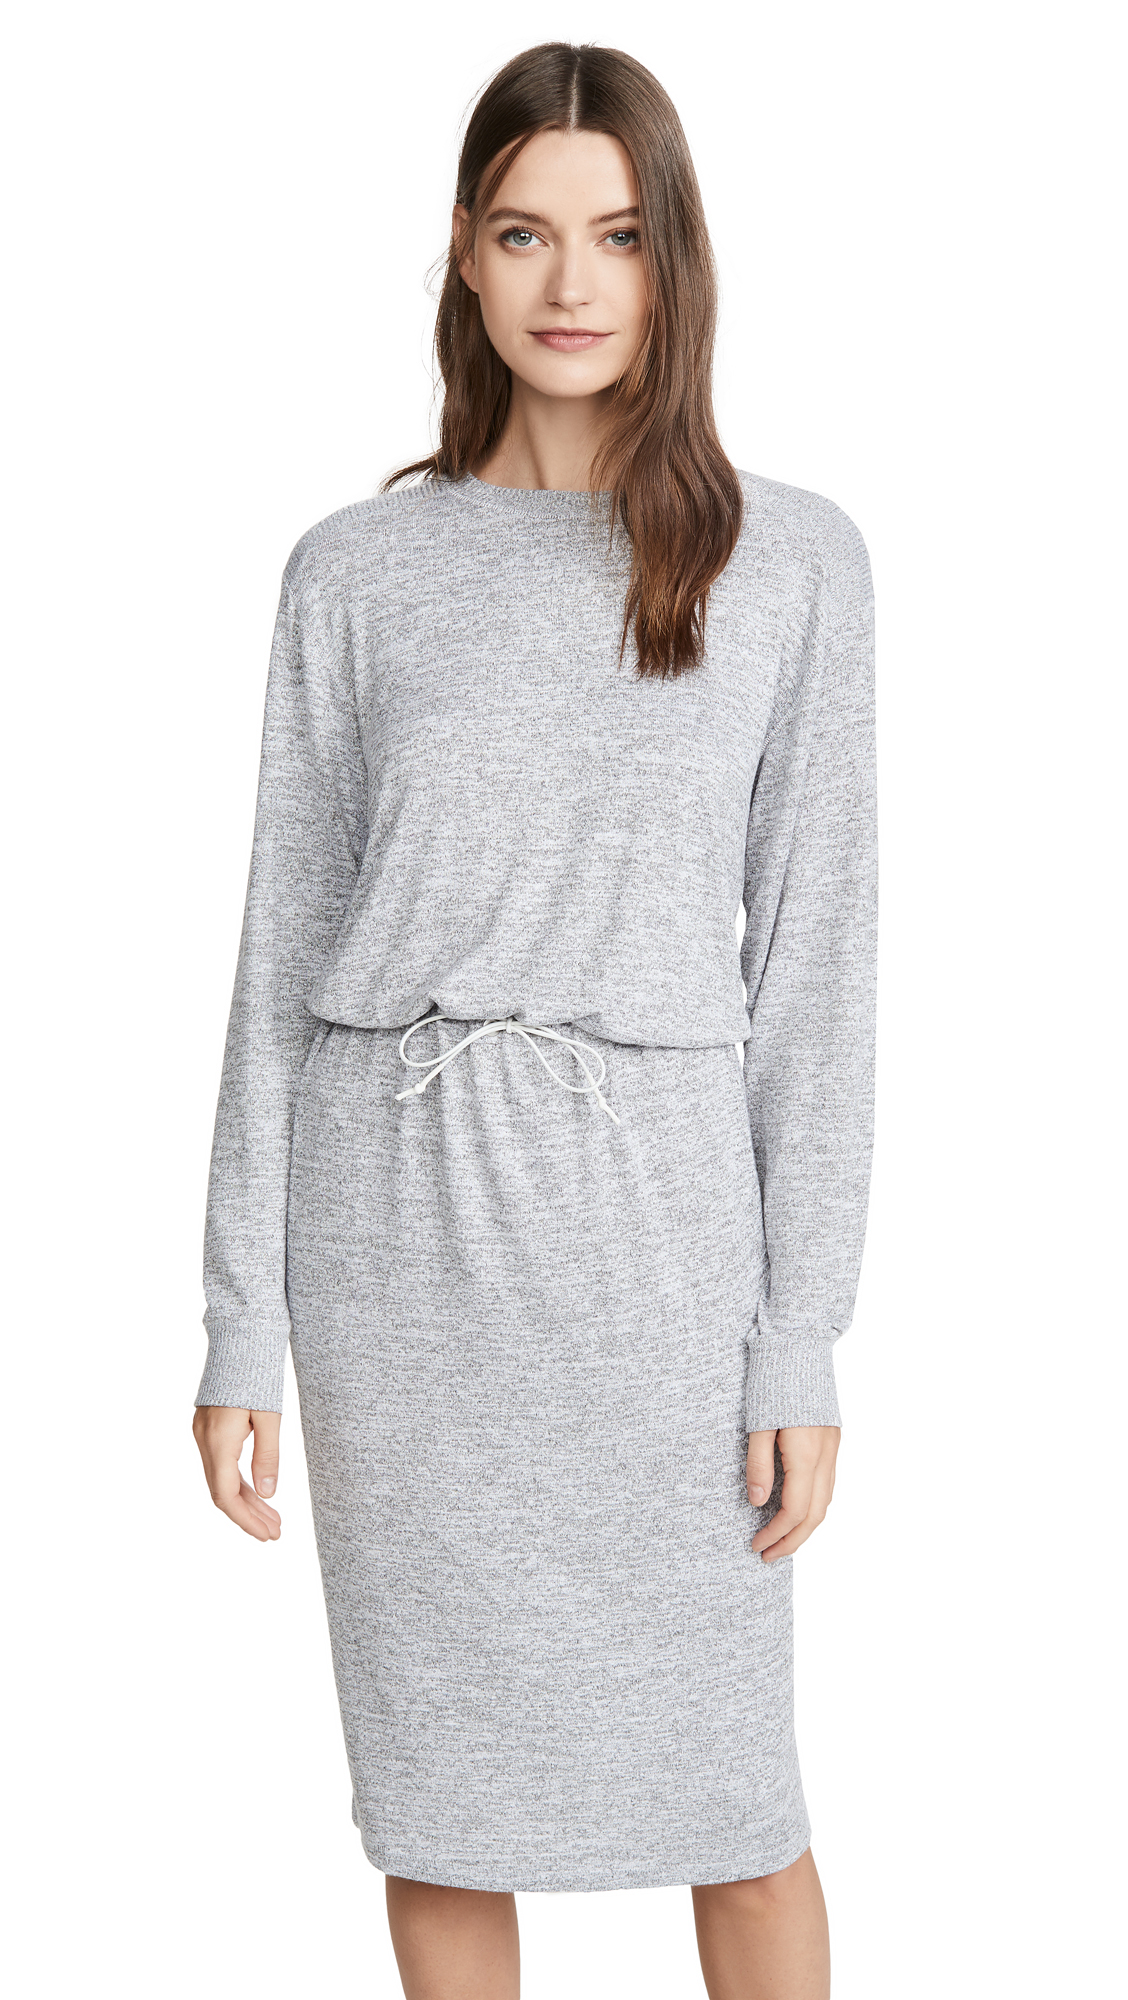 Rag & Bone/JEAN Avryl Dress - 30% Off Sale